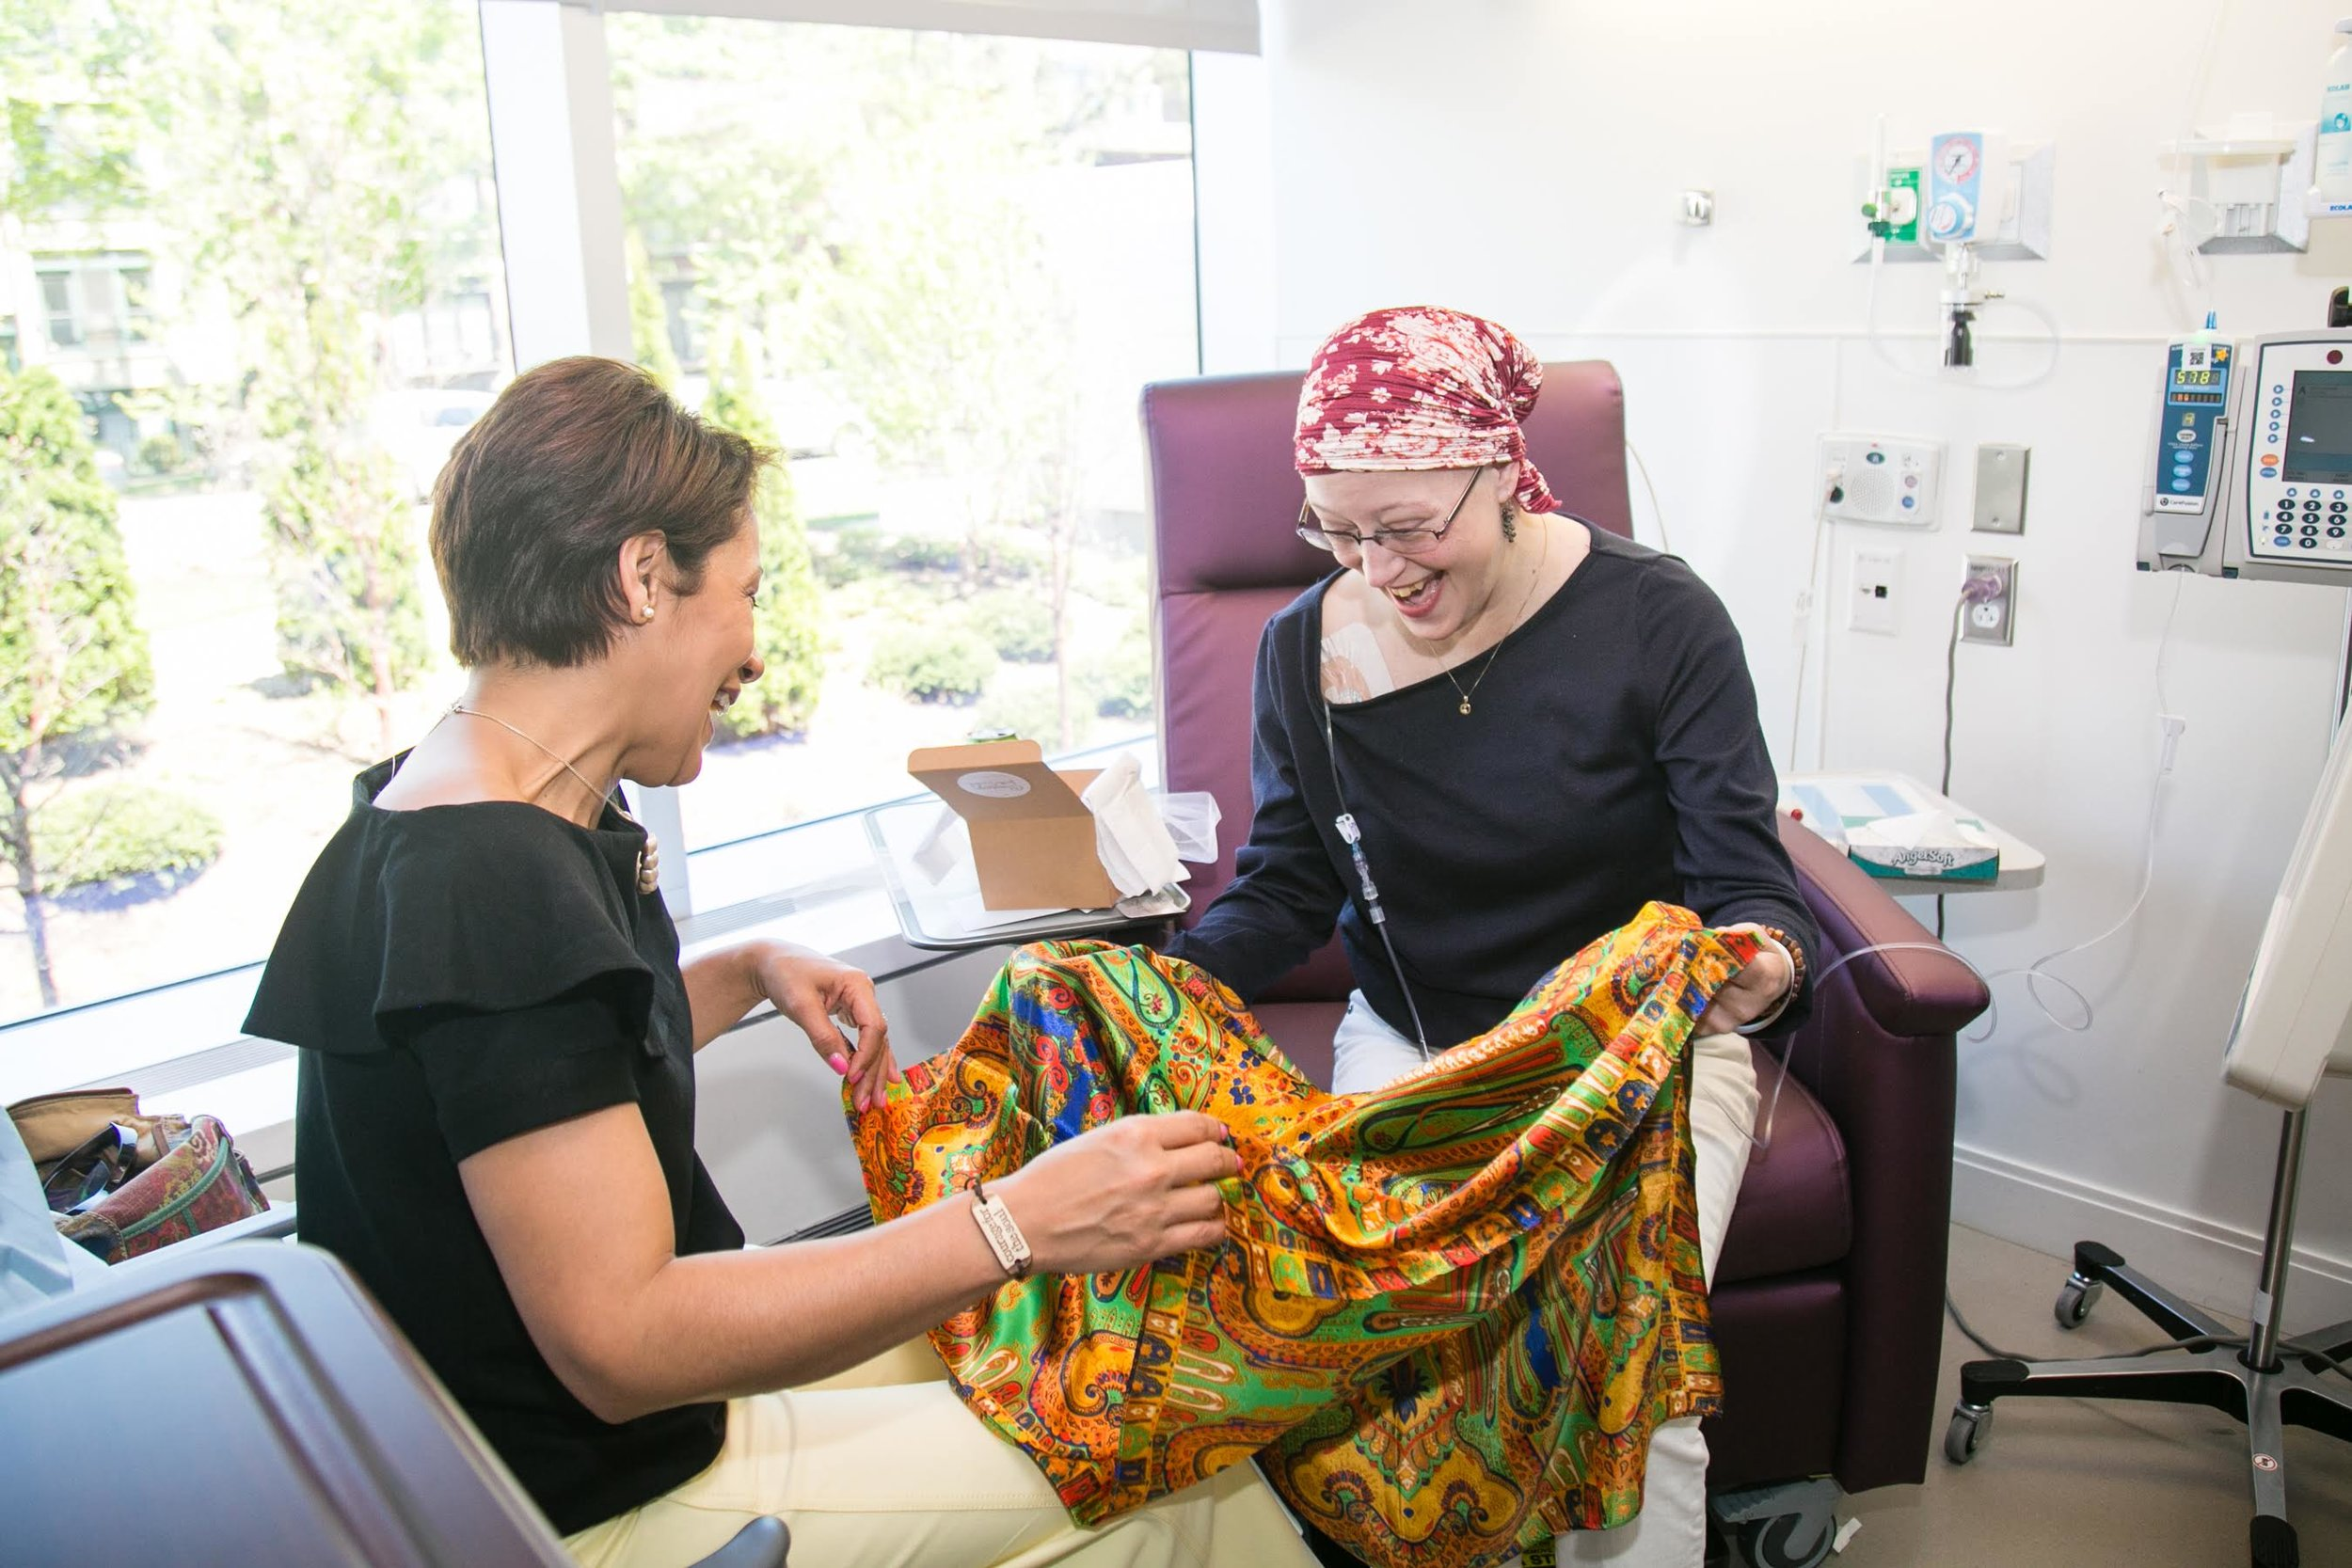 If you are currently receiving chemotherapy treatment, you may request a  Scarf of Courage for Yourself.